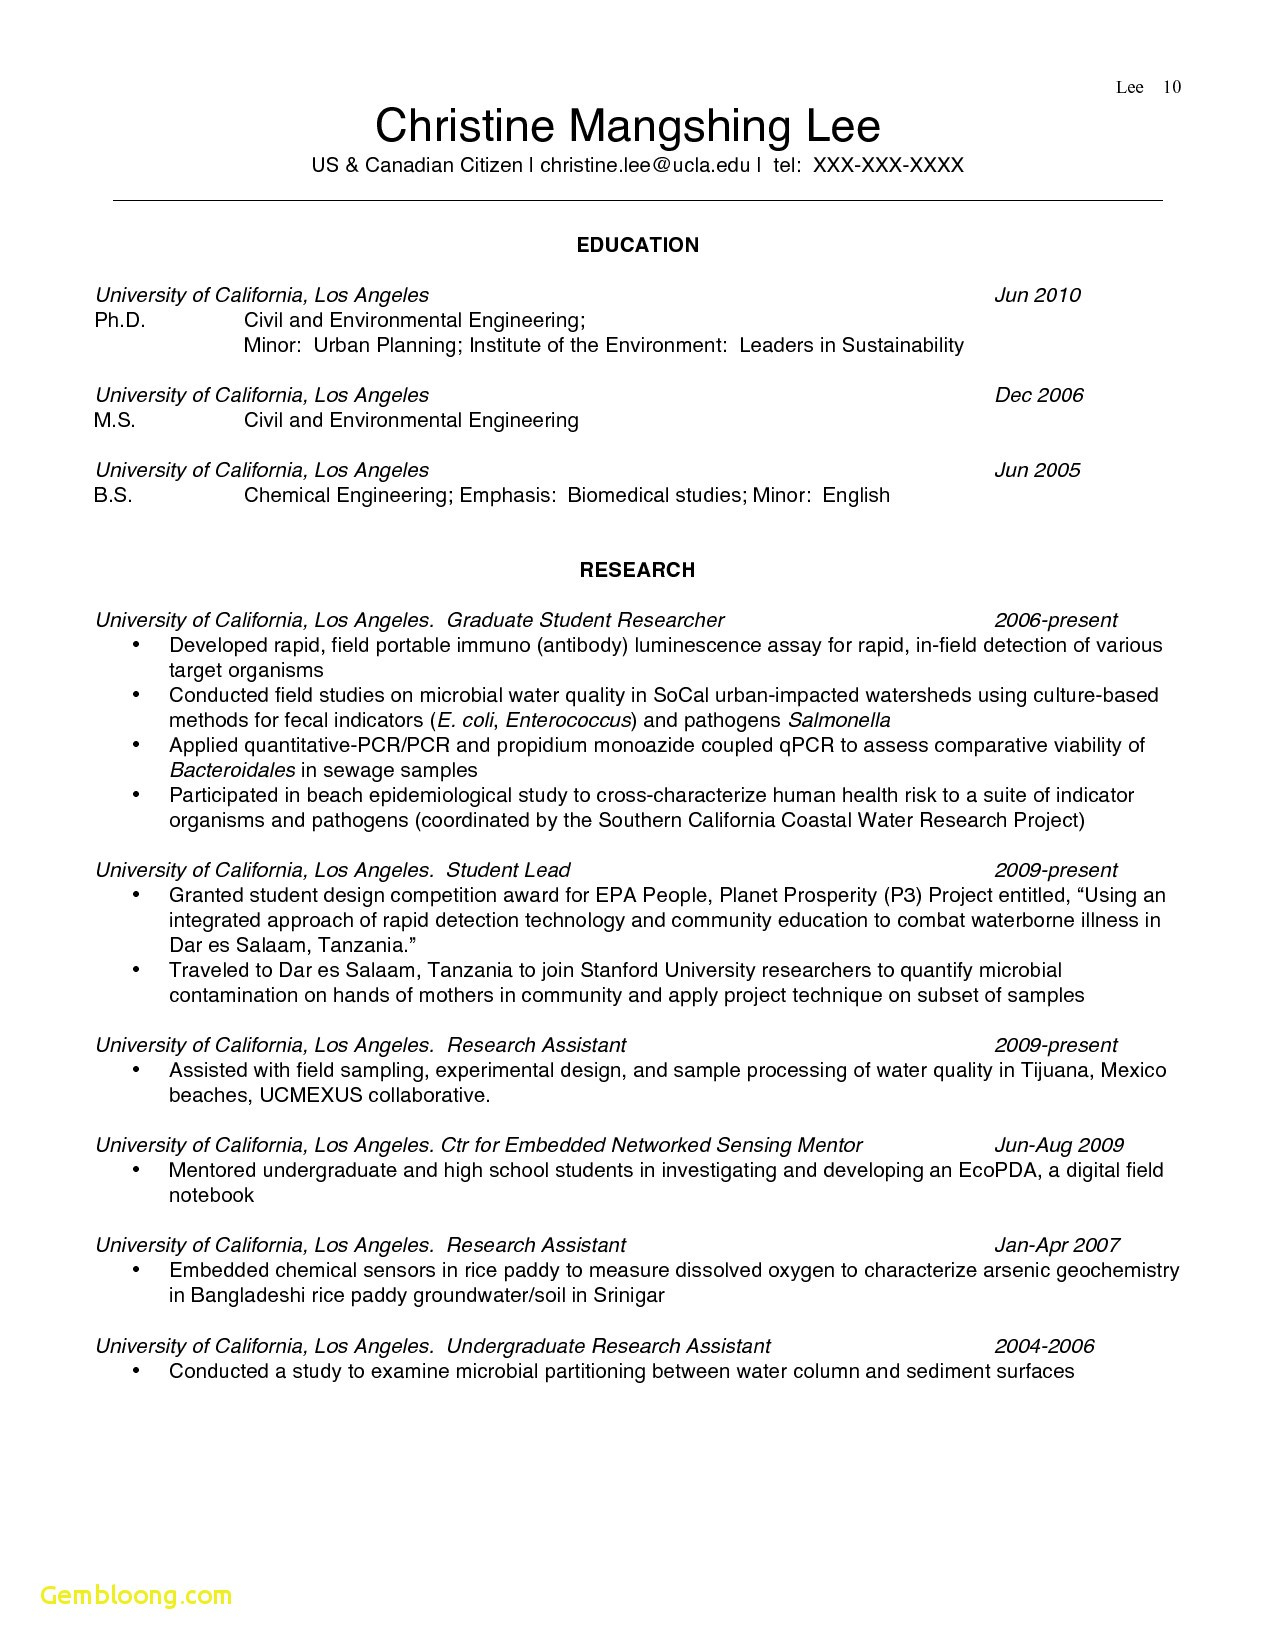 Cashier Resume Template - Walmart Cashier Job Description for Resume